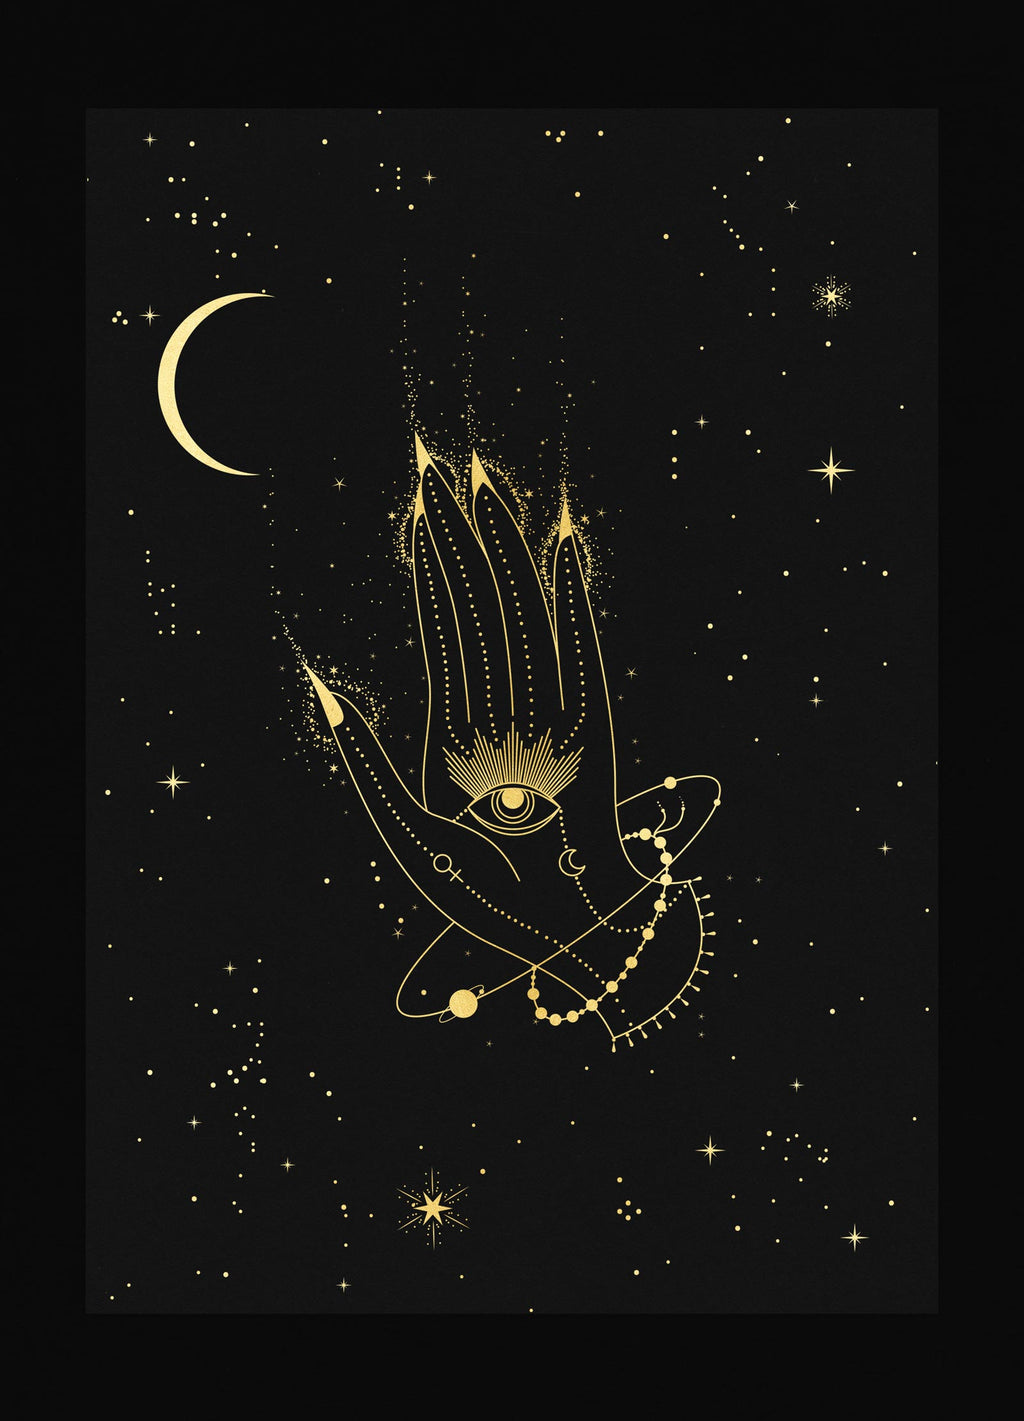 Healing Hamsa Hand with eye art print in gold foil and black paper with stars and moon by Cocorrina